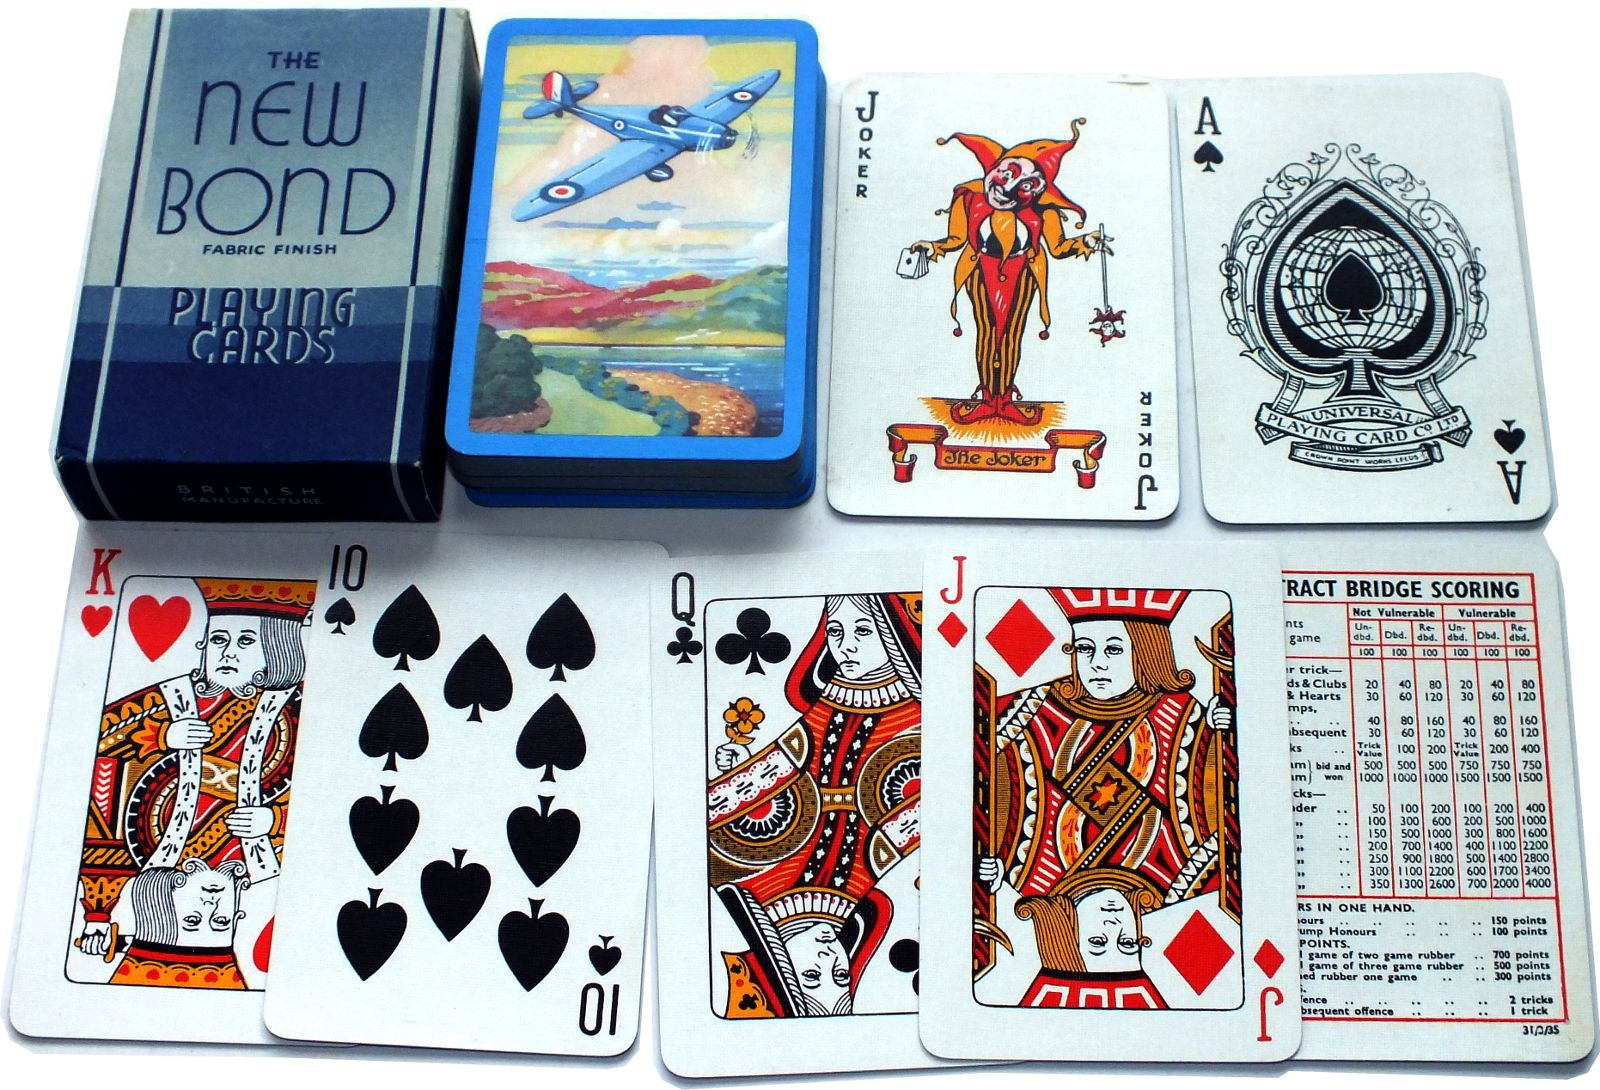 The New Bond Fabric Finish Playing Cards, made by the Universal Playing Card Co. Ltd